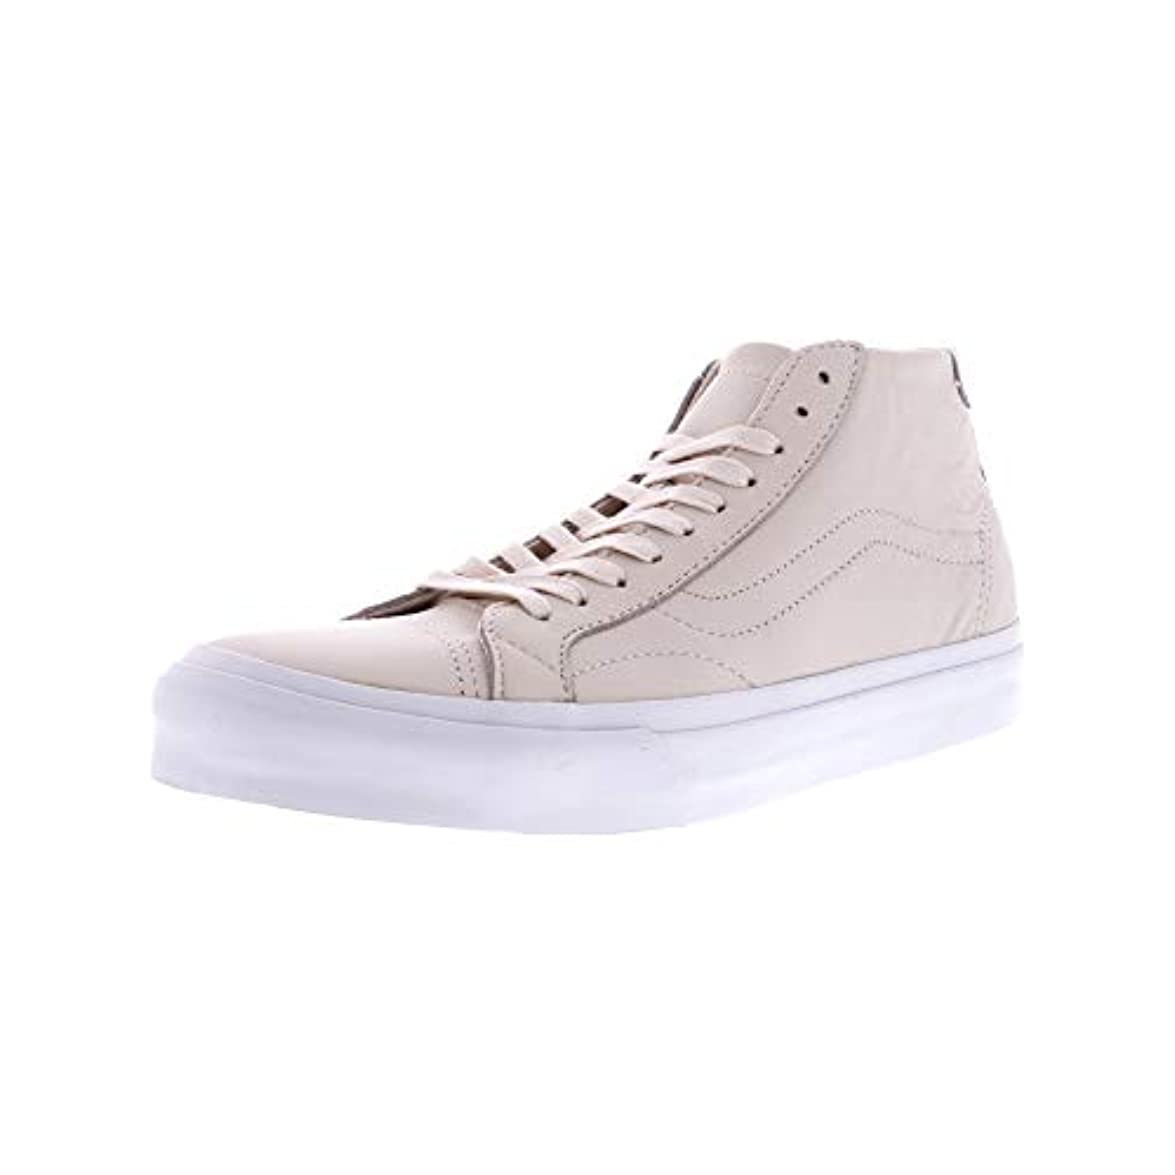 Vans Court Mid Dx Leather Ankle high Canvas Skateboarding Shoe